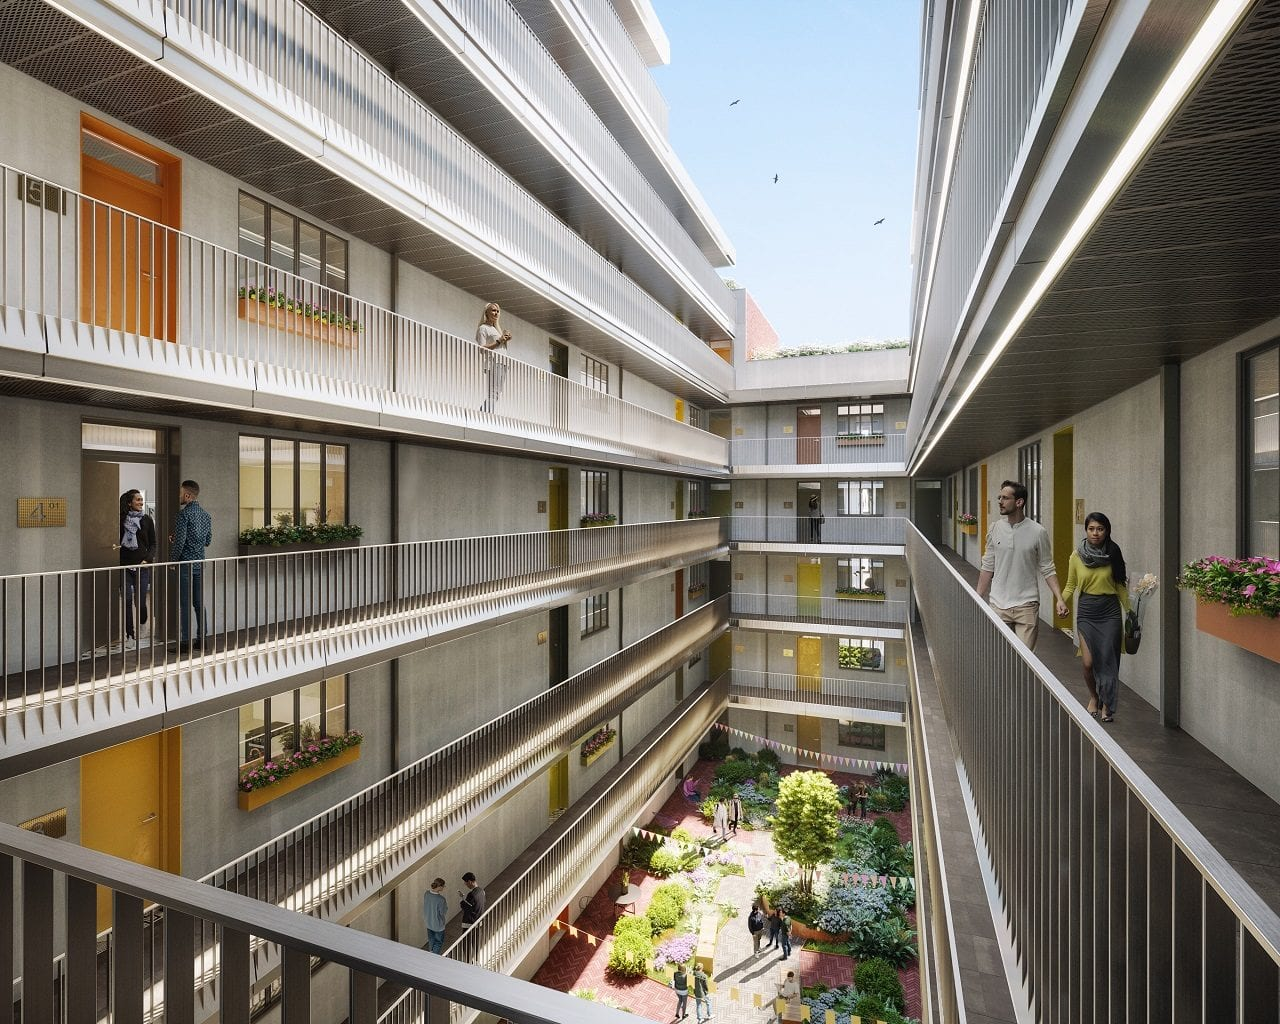 Raeon-New-Cross-Central-_HawkinsBrown_NewCrossCentral_Courtyard_Balcony_V6.0